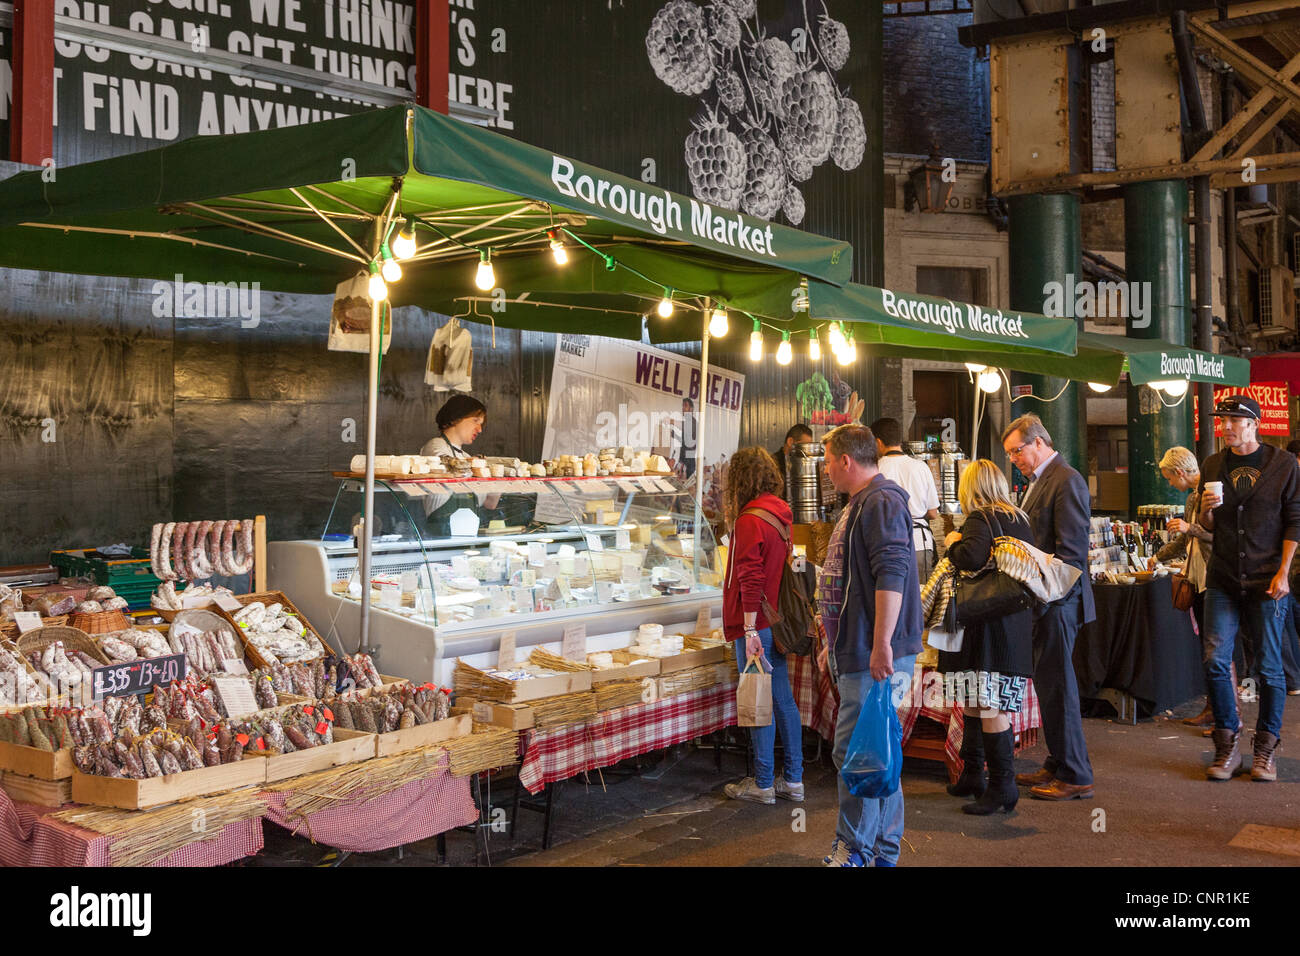 People shopping at Borough Market London England - Stock Image